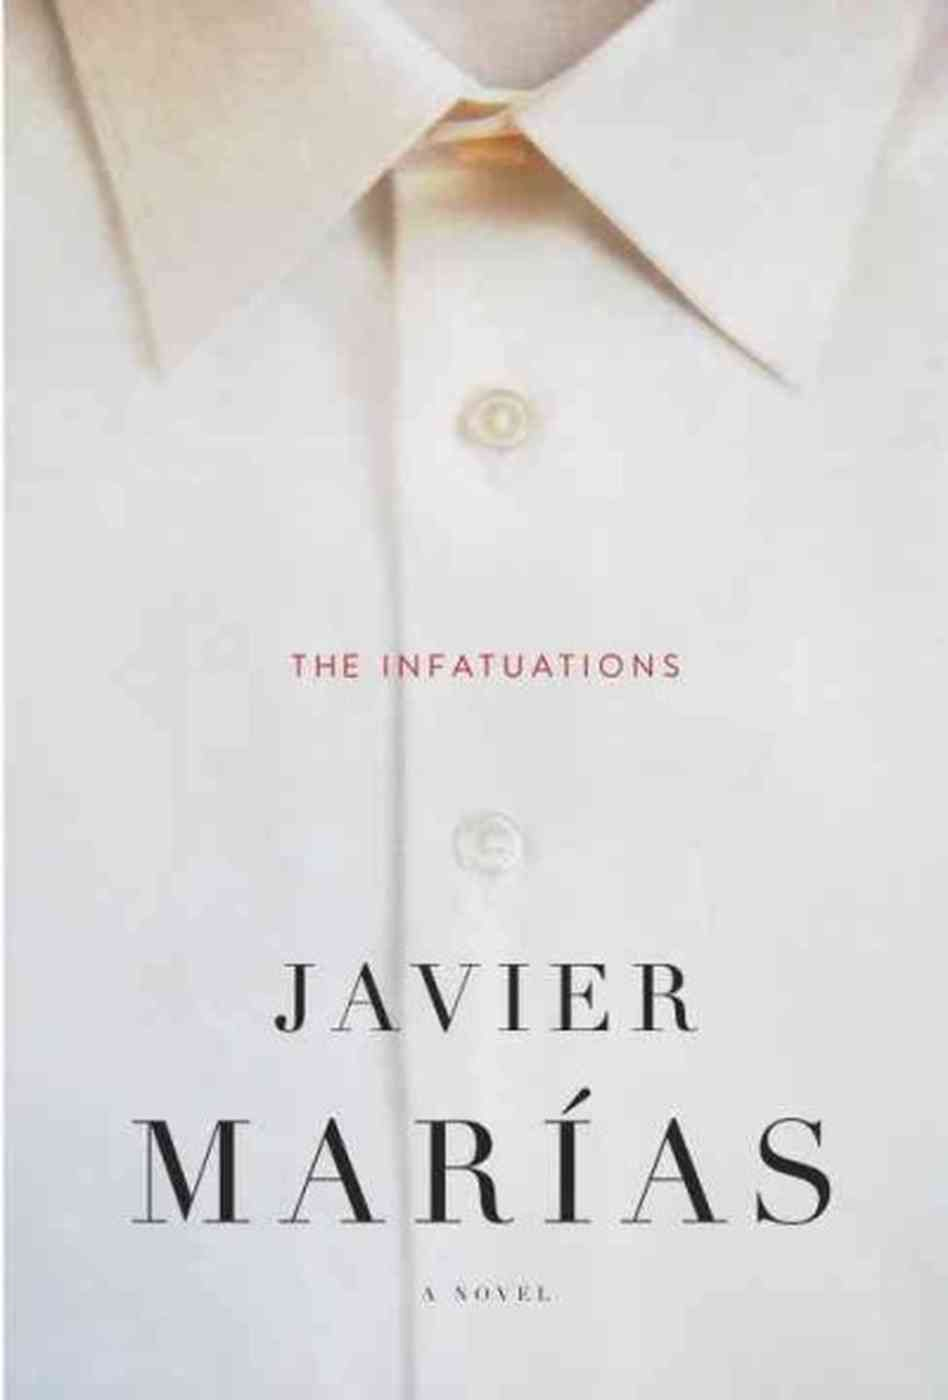 'The Infatuations'